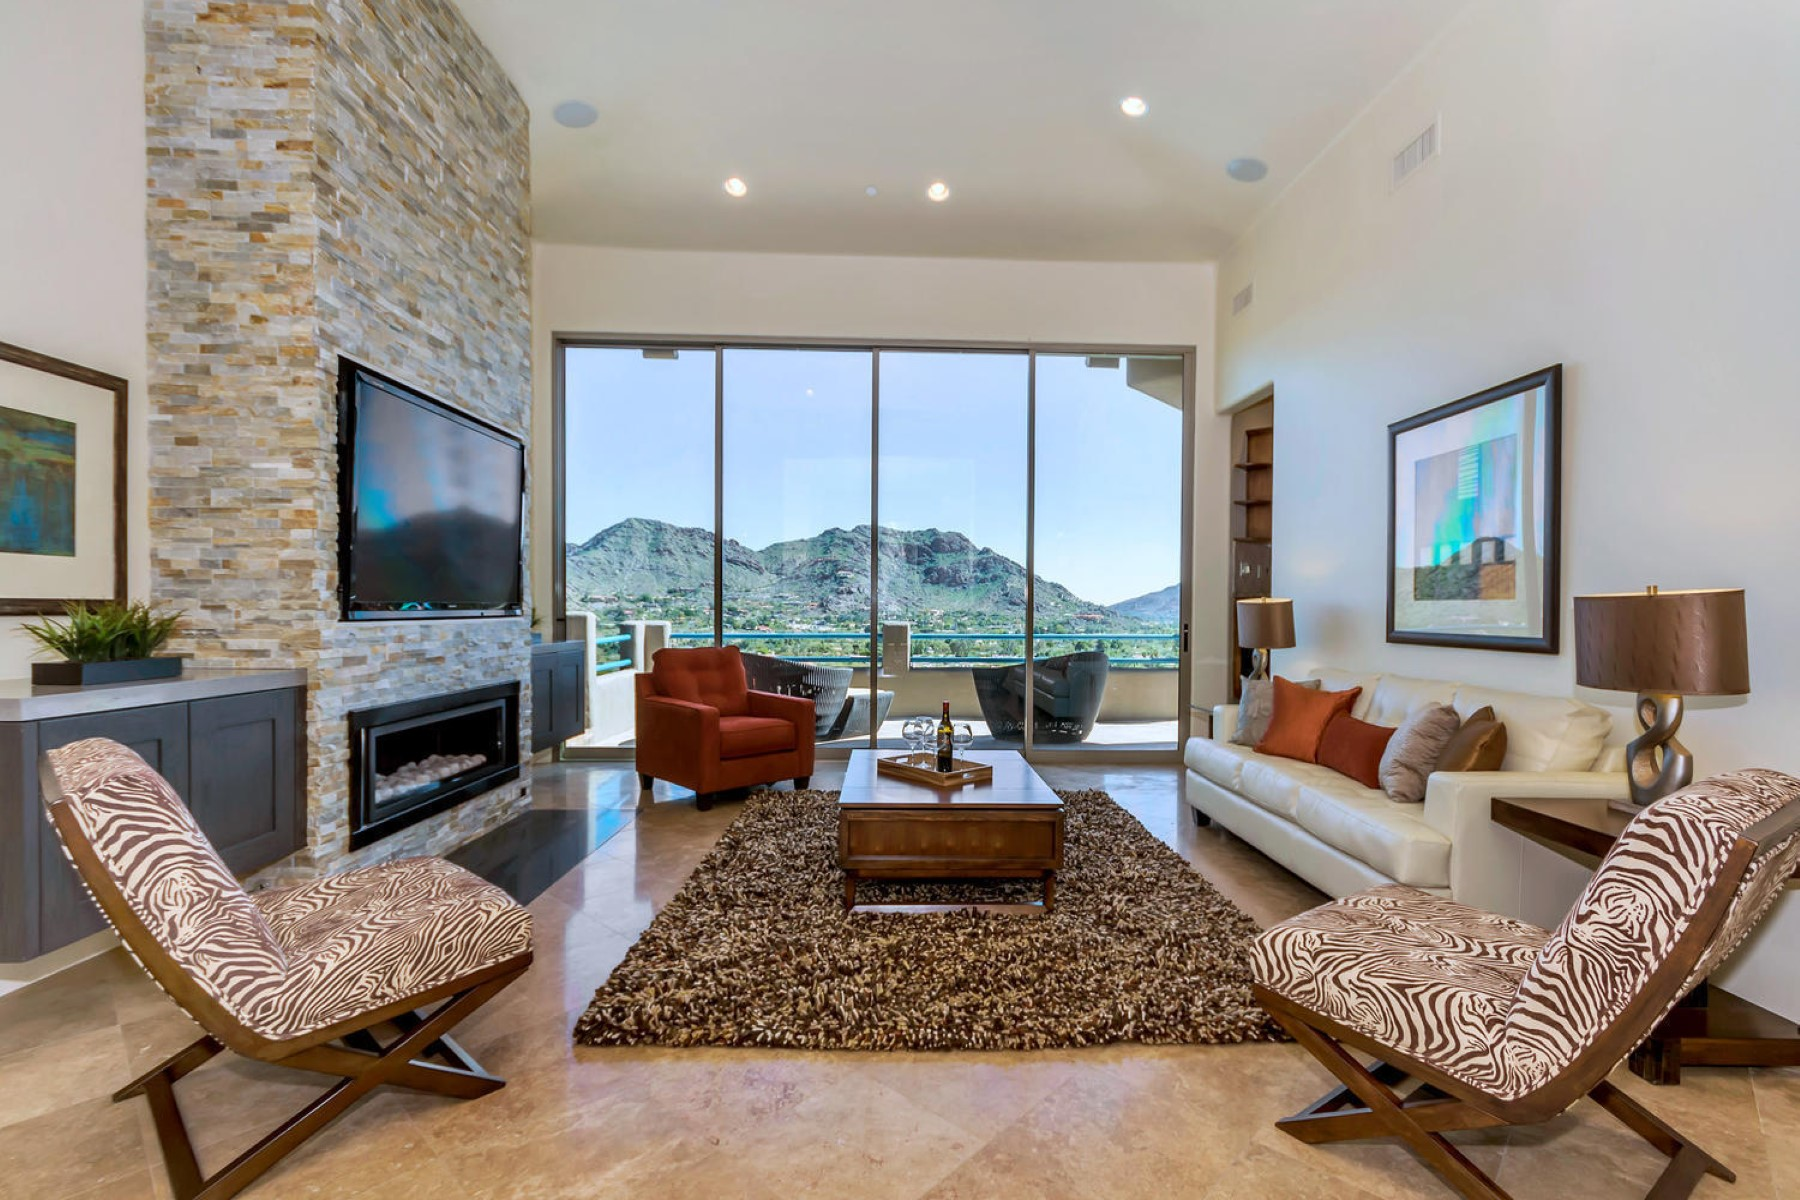 Single Family Home for Sale at Gorgeous home with the most beautiful views in all of Paradise Valley 4748 E White Dr Paradise Valley, Arizona, 85253 United States